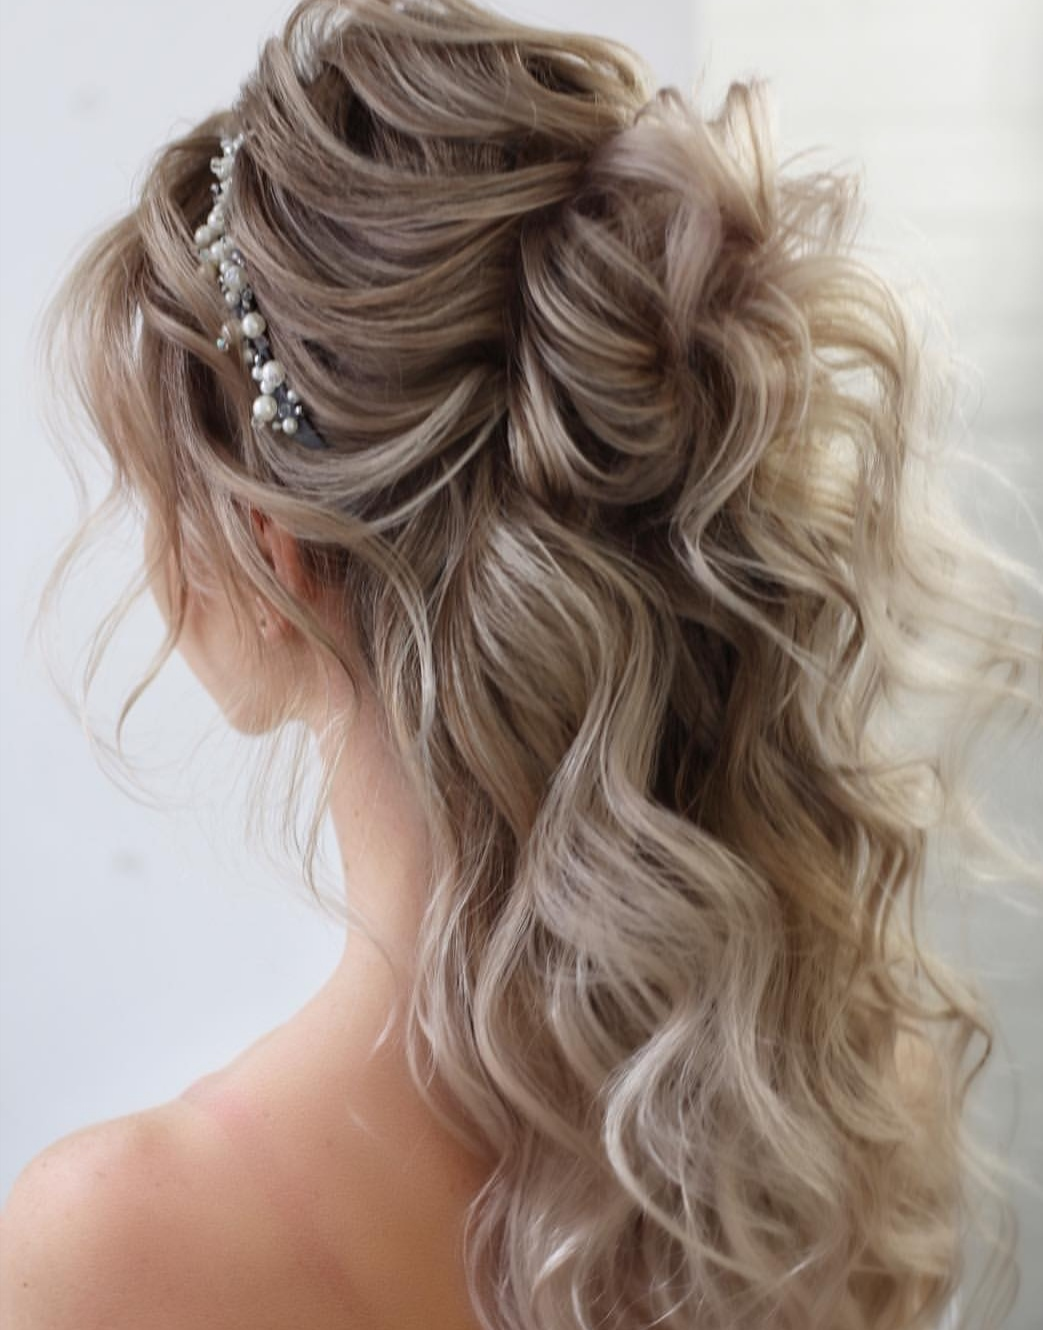 22 Half Up Wedding Hairstyles For 2020 Kiss The Bride Magazine